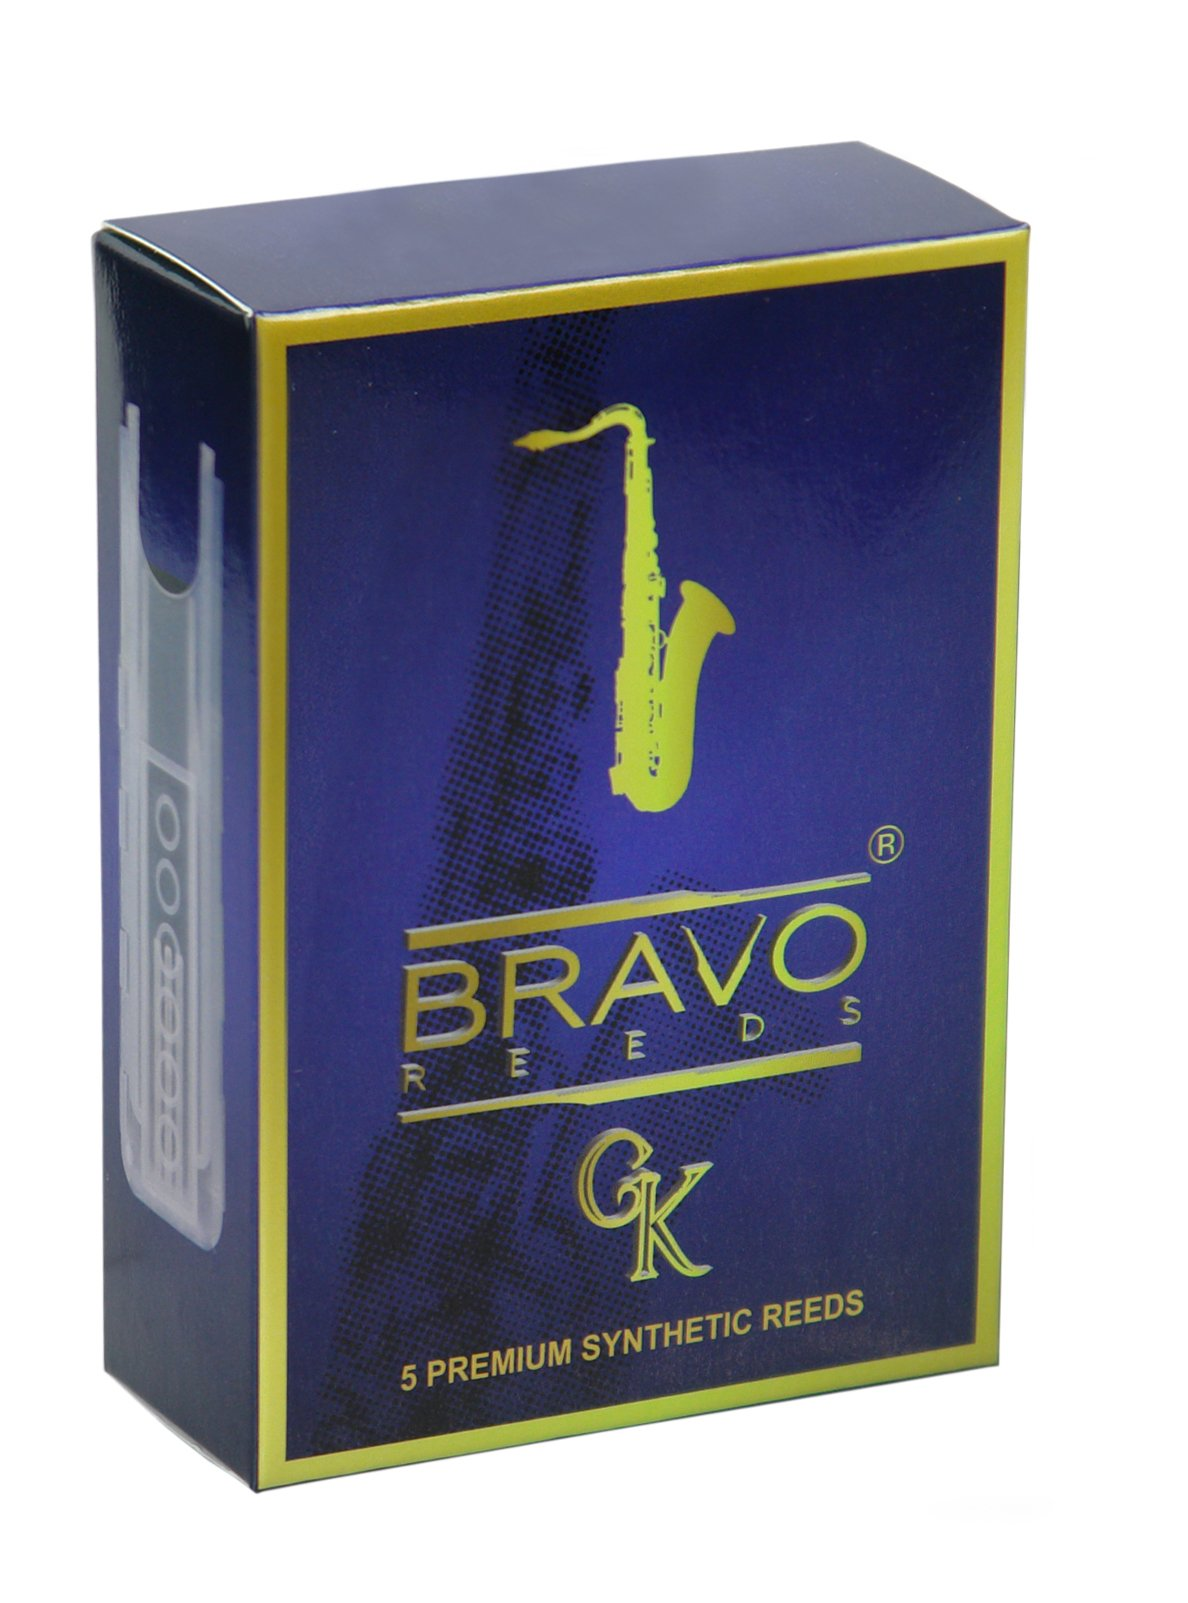 Bravo BR-TS20 Synthetic Reeds for Tenor Saxophone, Strength 2.0 (Box of 5)